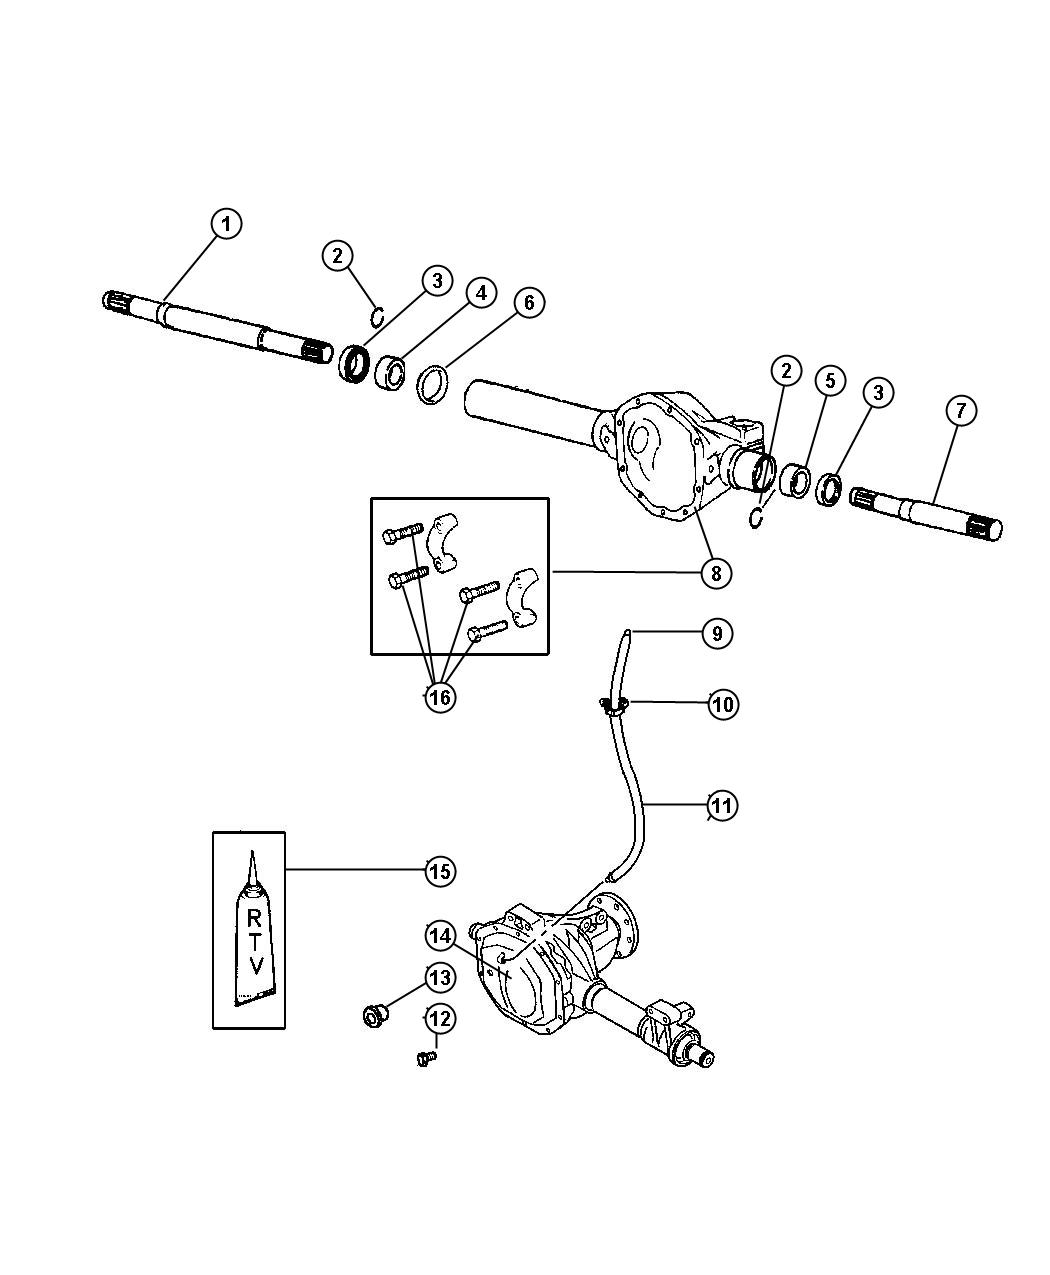 2001 Dodge Dakota Front Suspension Diagram